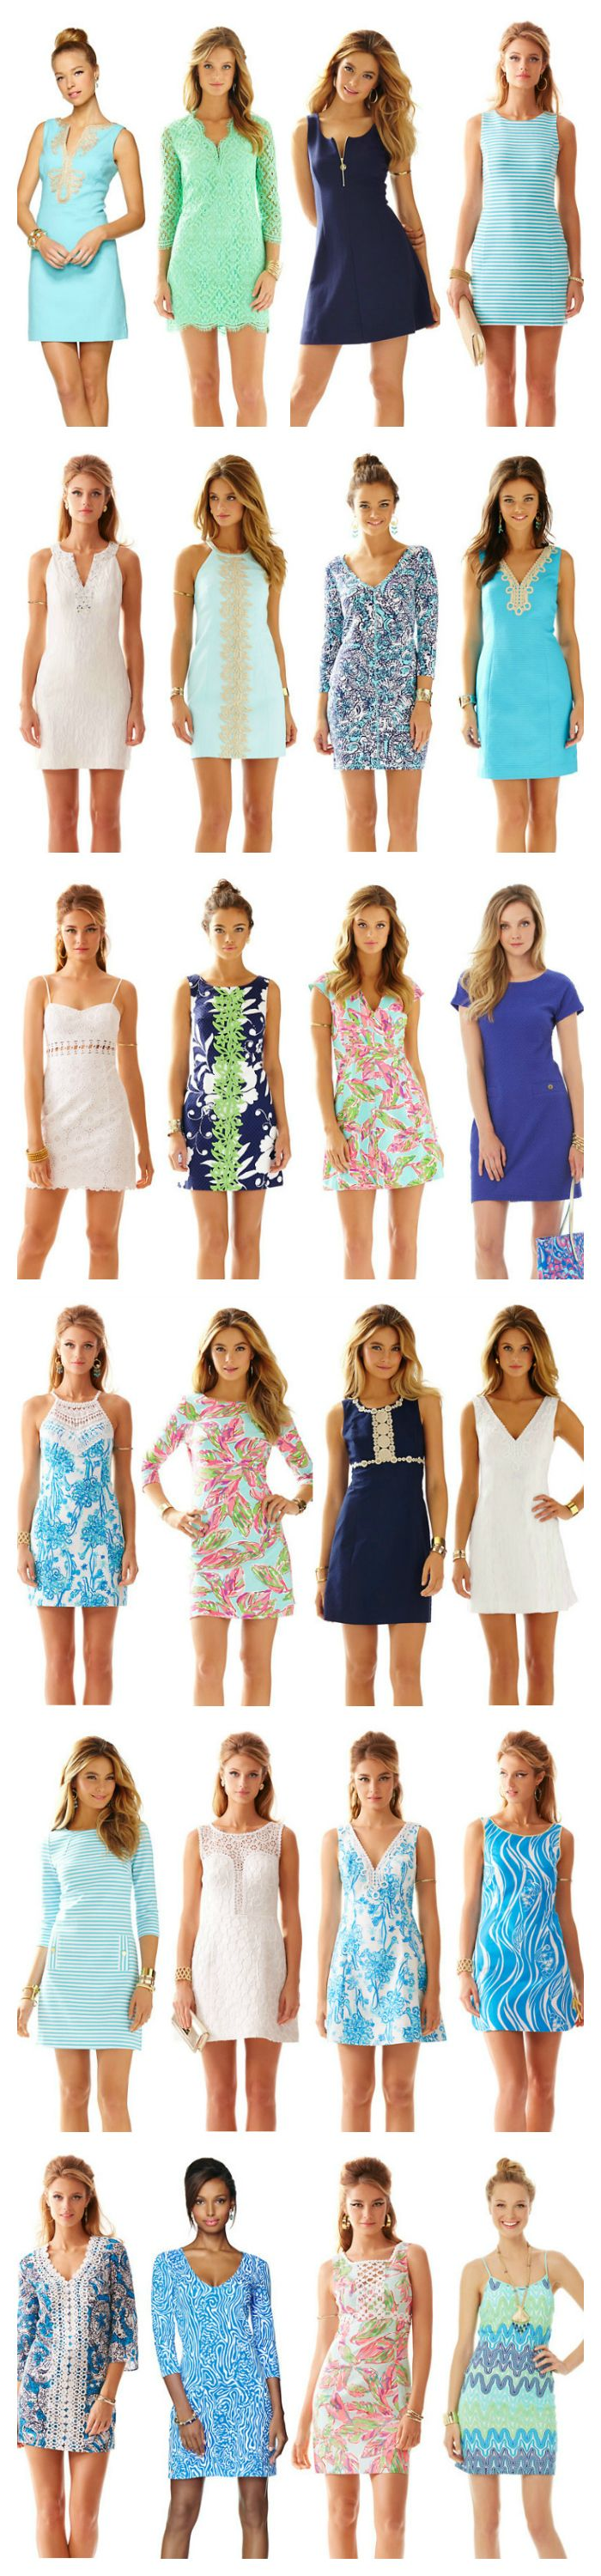 Lilly Pulitzer, just go ahead and take all of my money. The spring collection is PERFECTION.